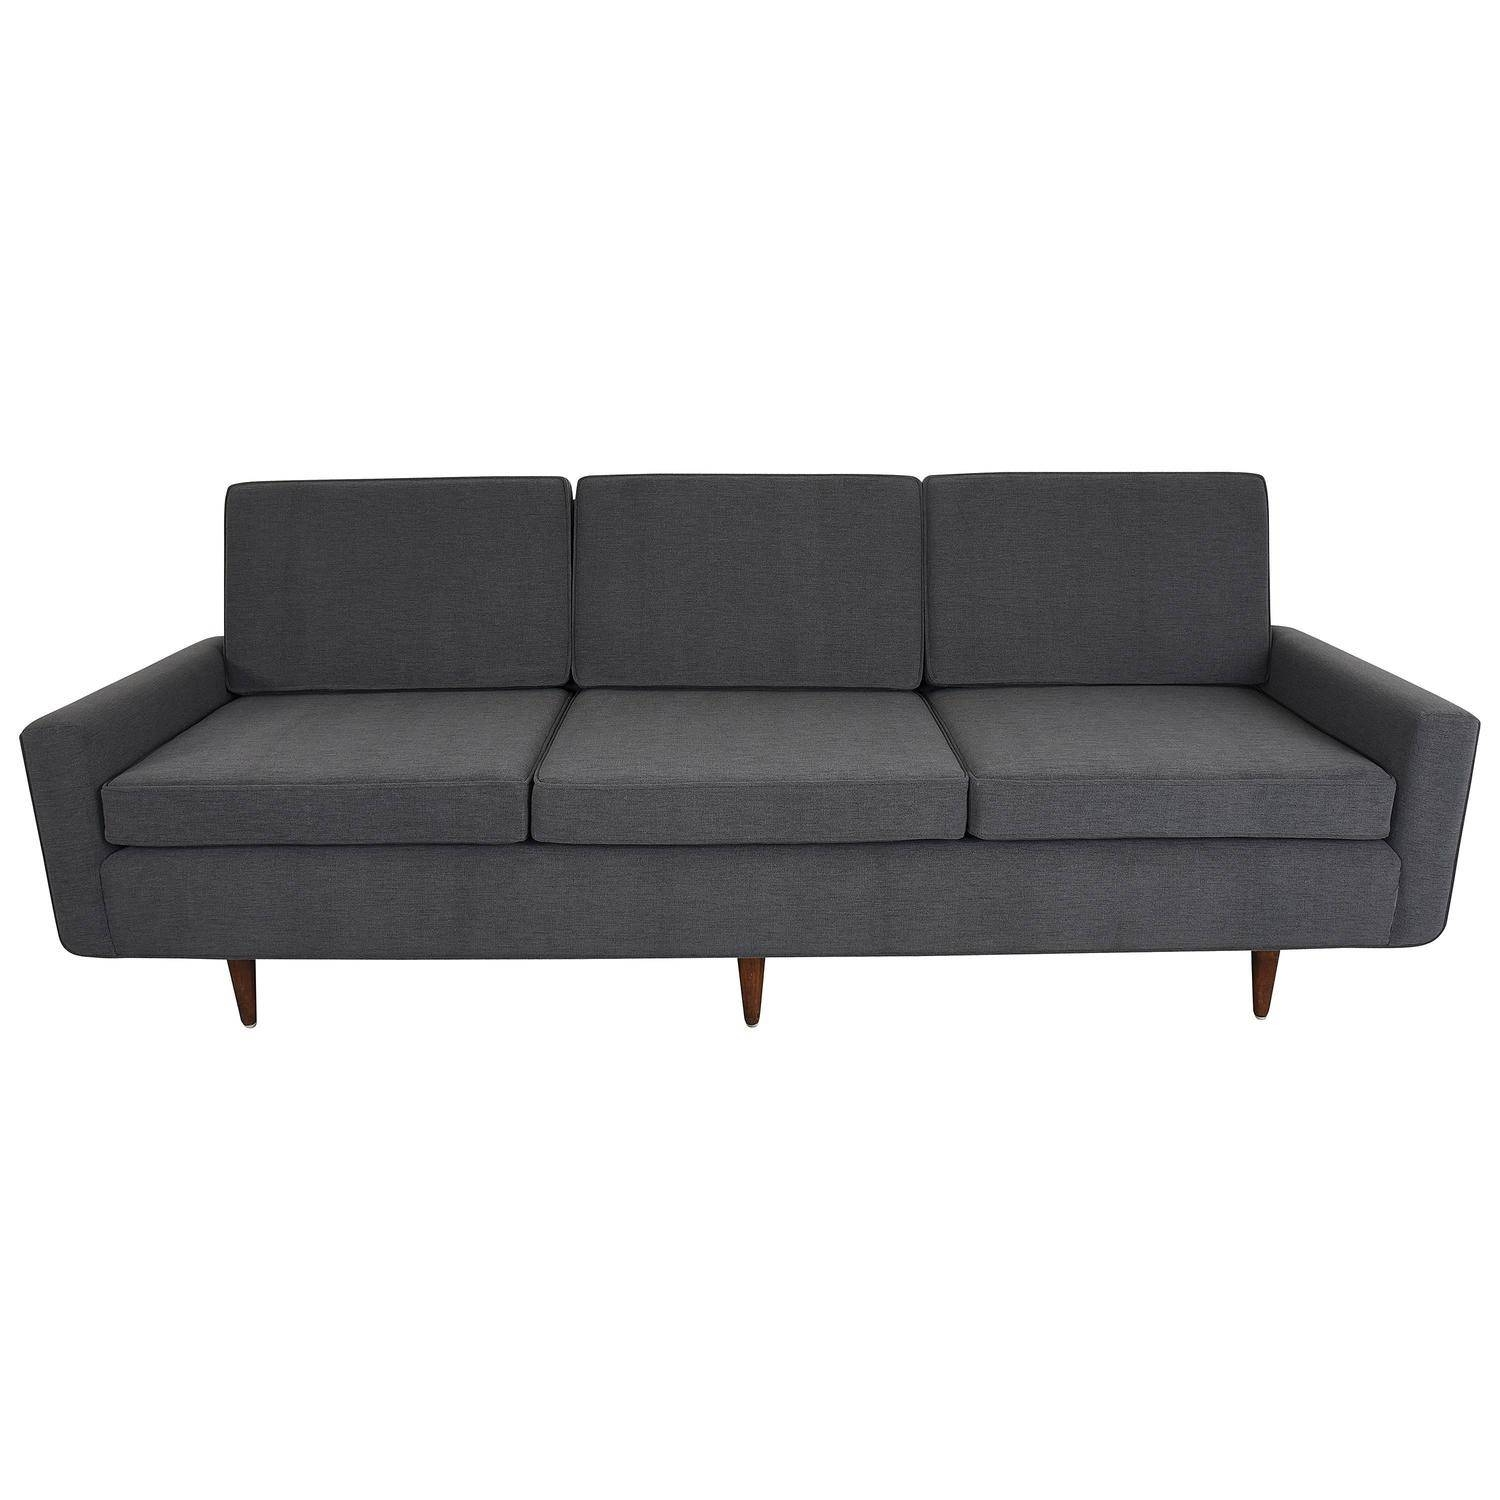 Florence Knoll Sofa Three-Seat Sofa, Model 26, Pair Available For intended for Florence Knoll 3 Seater Sofas (Image 20 of 30)